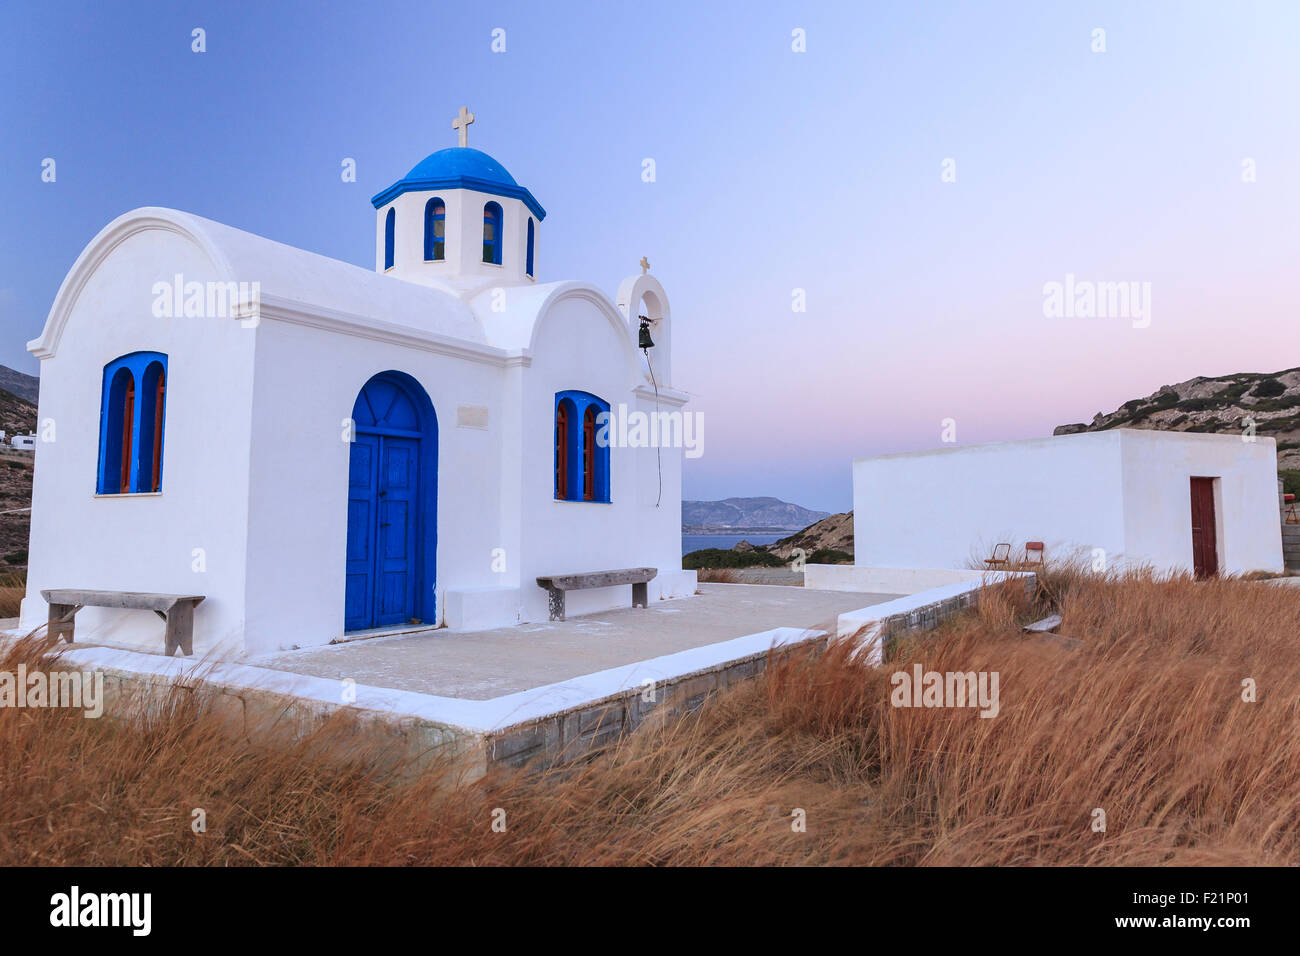 Chapel in the evening light, Karpathos, Dodecanese, Greece Stock Photo